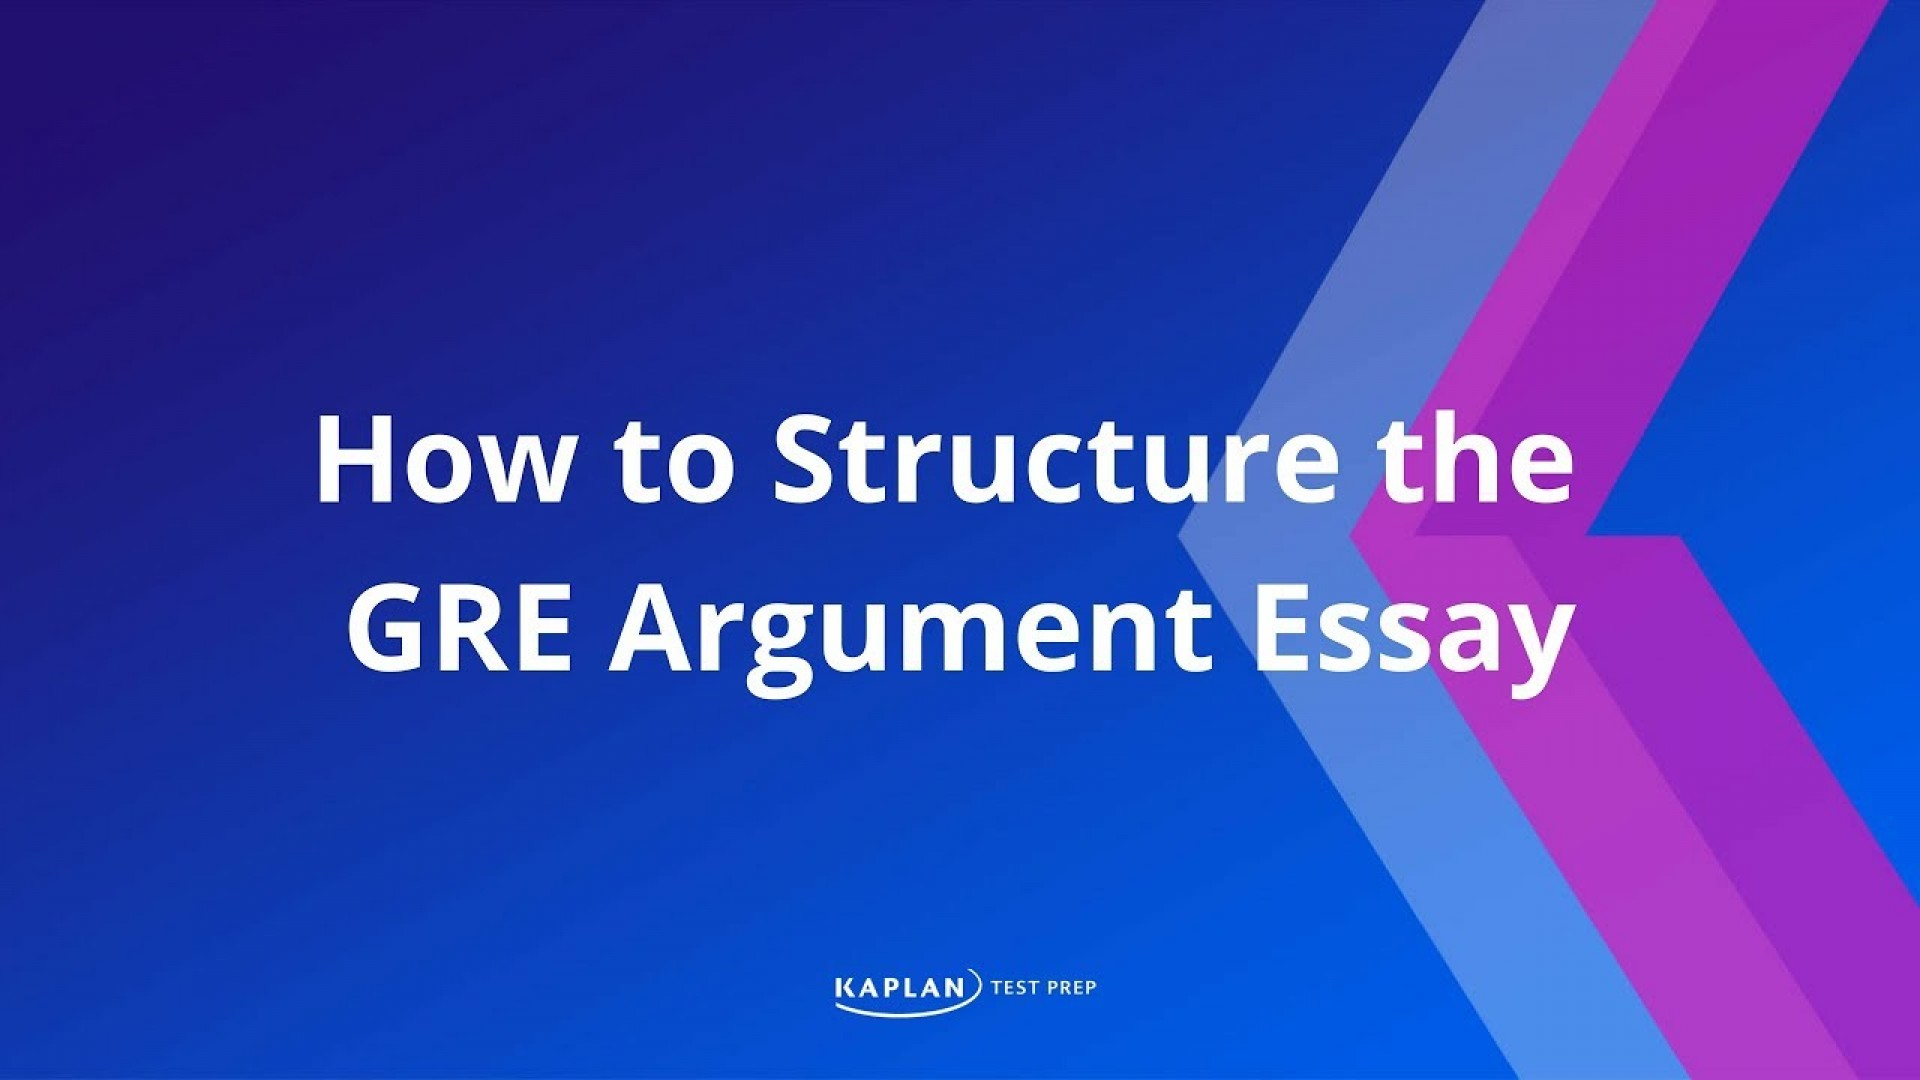 014 Maxresdefault Gre Argument Essays Unusual Essay Examples Sample Questions Analytical Writing Samples 1920